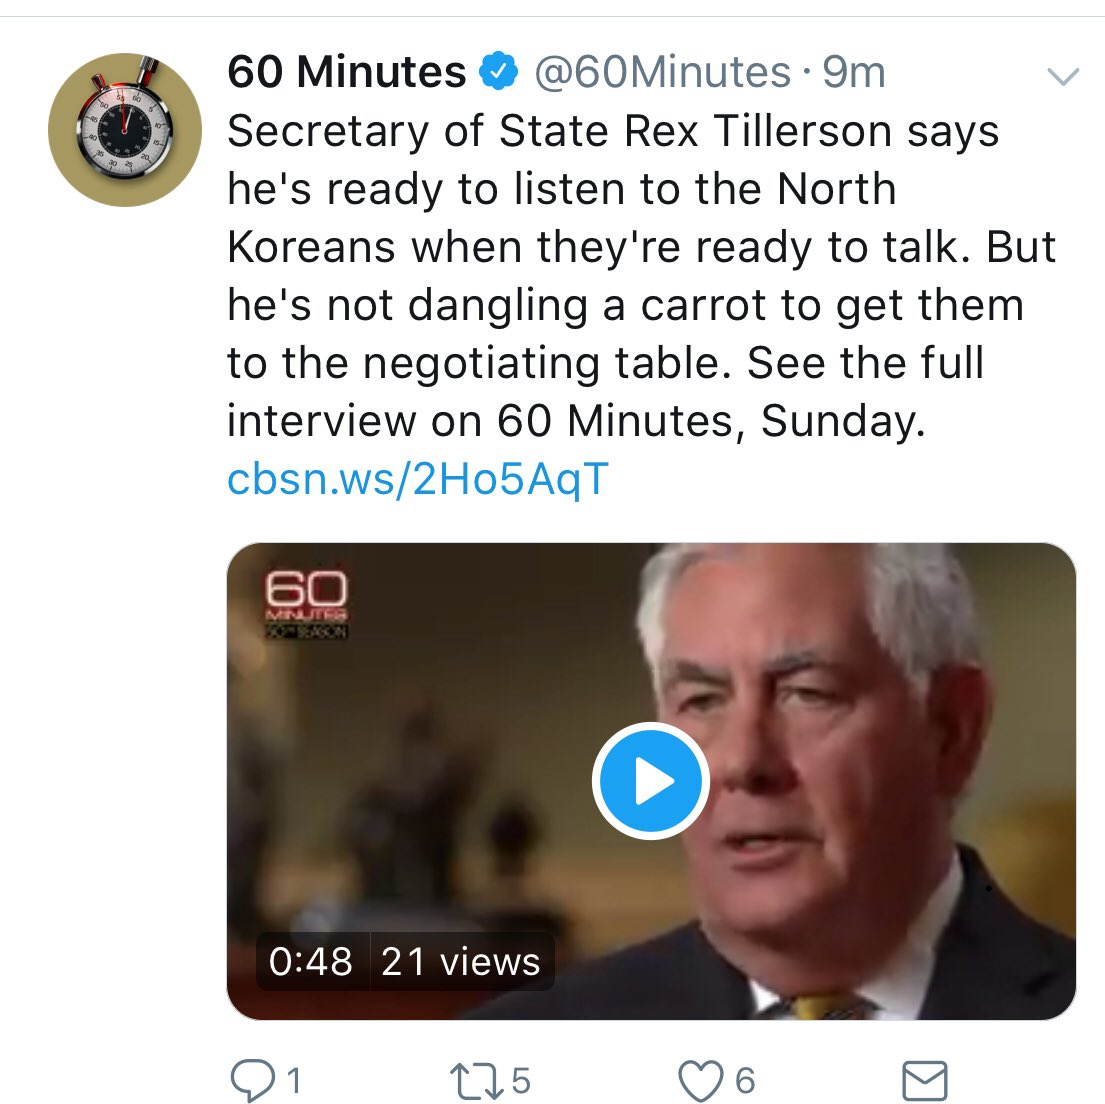 The ONLY thing I see dangling here is Tillerson's beautiful neck, which would look pretty appetizing to me on ANY table.